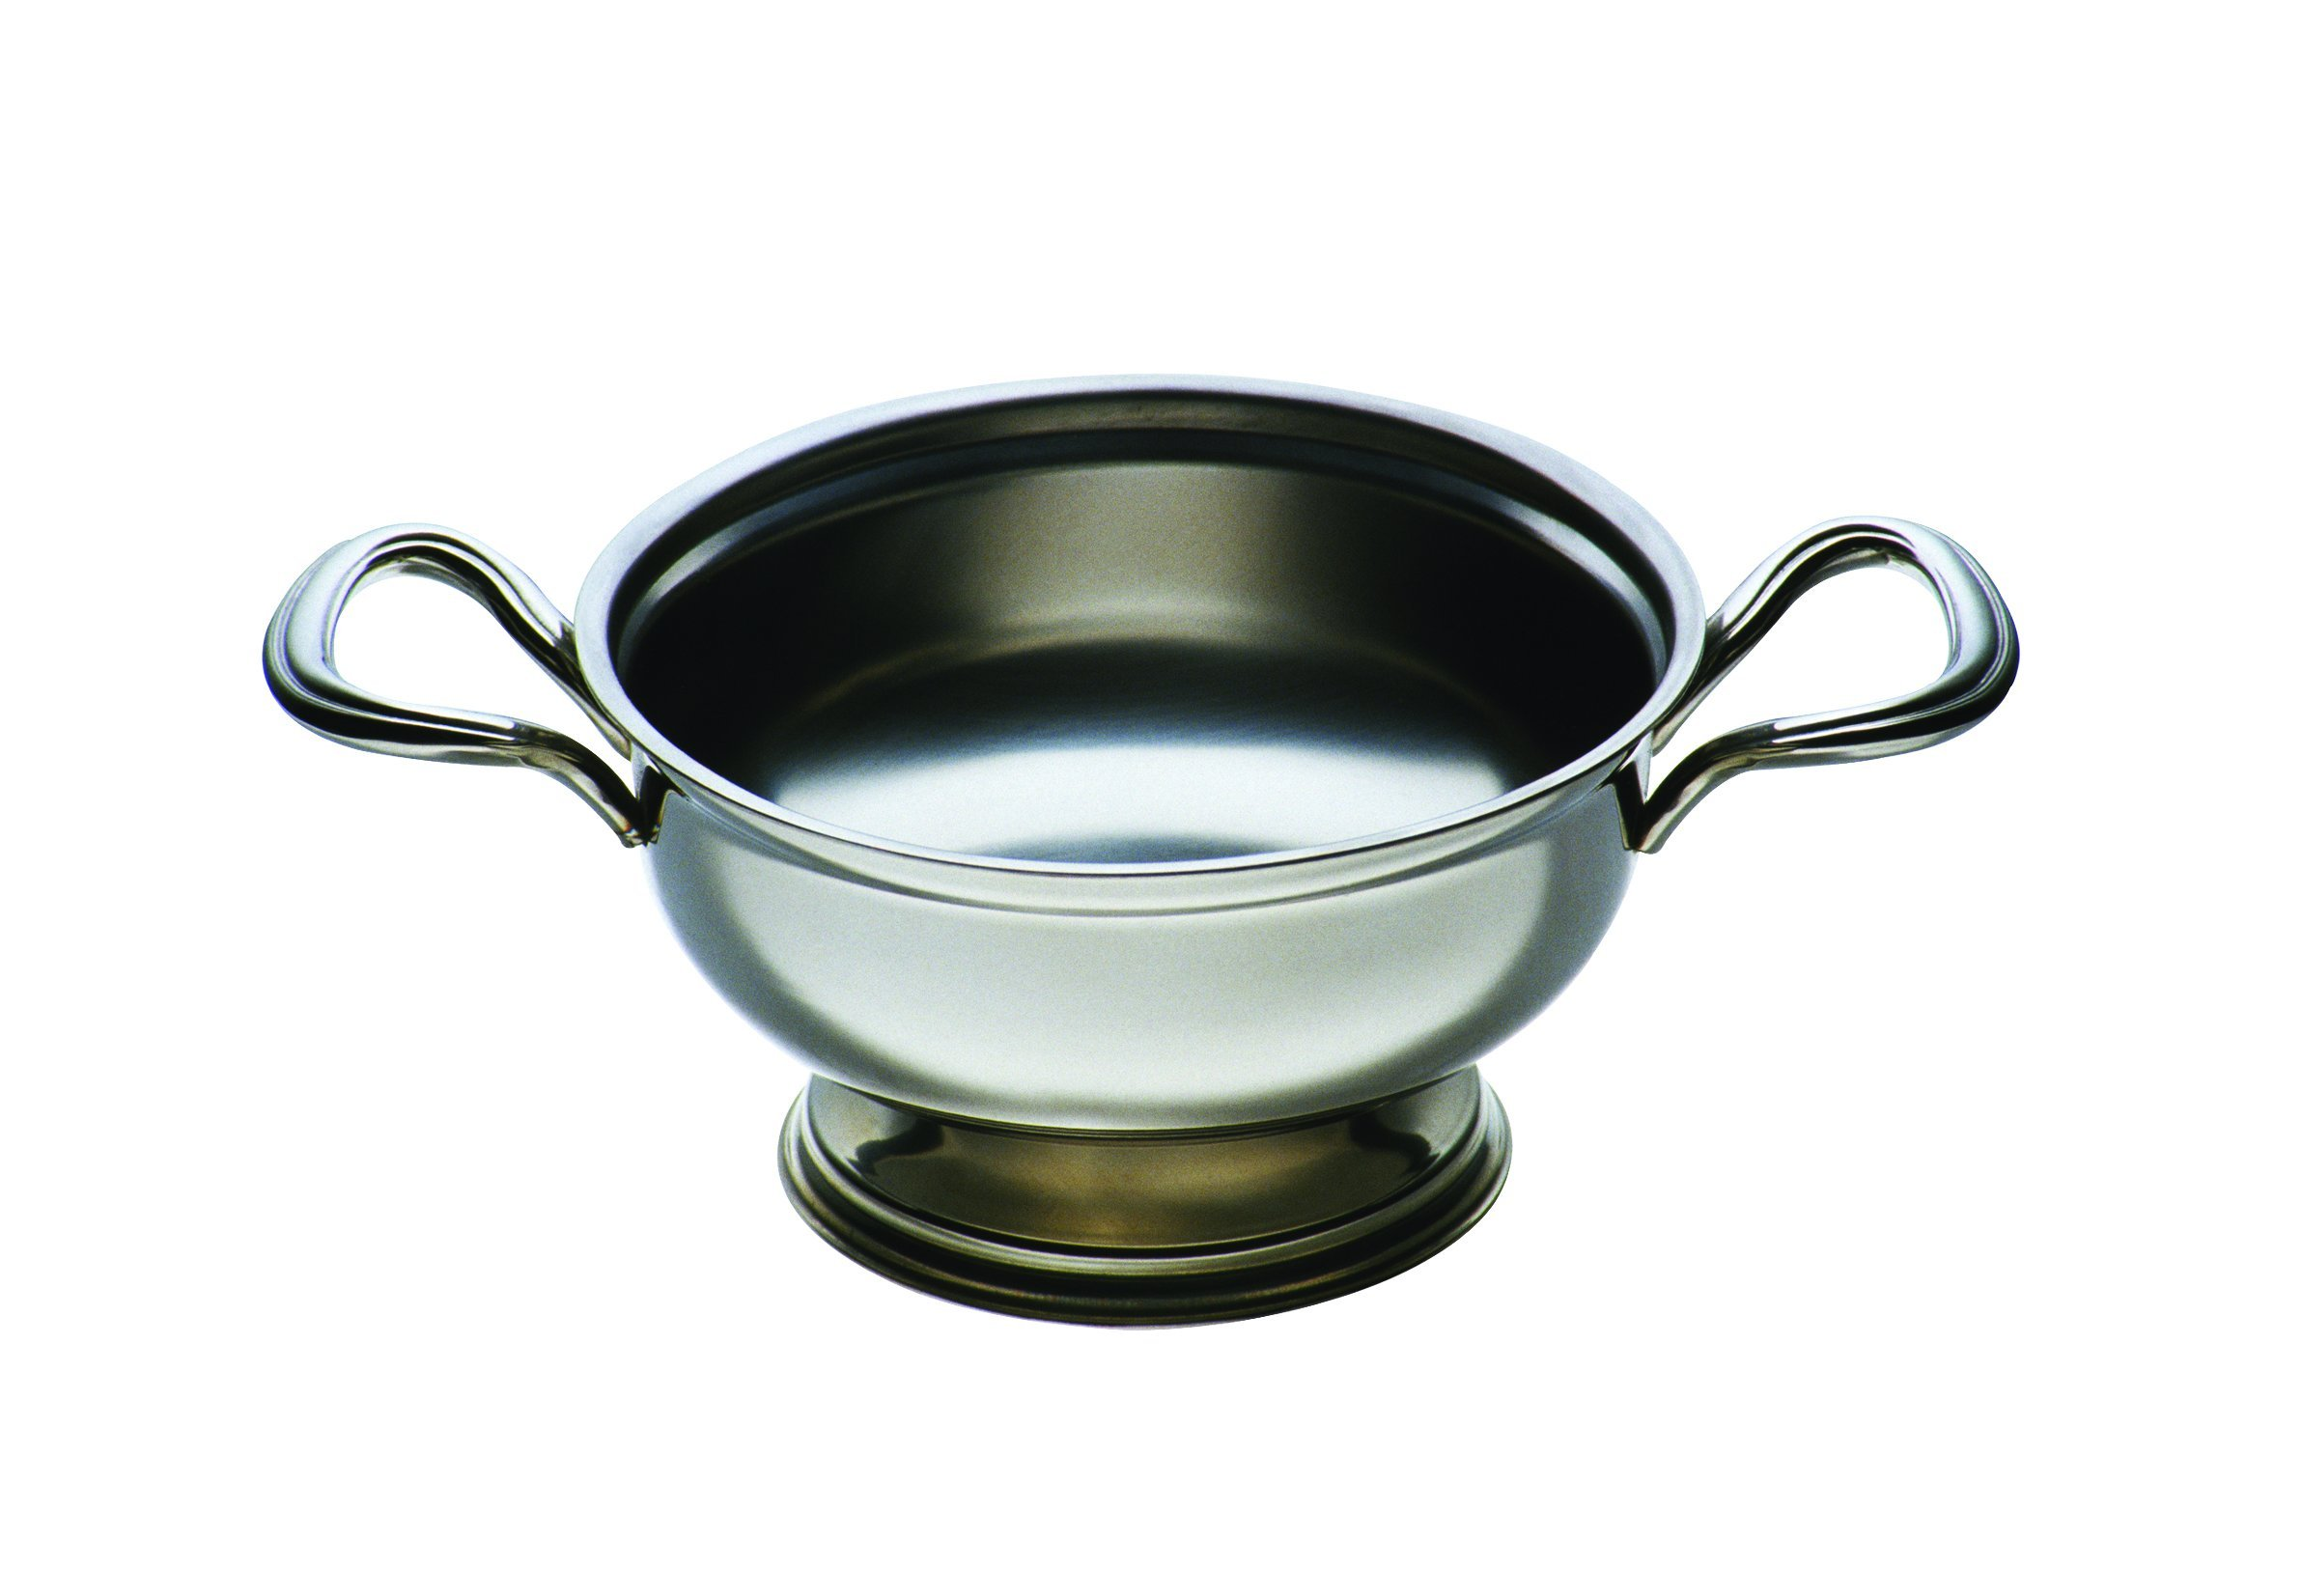 Mepra Palace Soup Tureen without Lid, 26cm